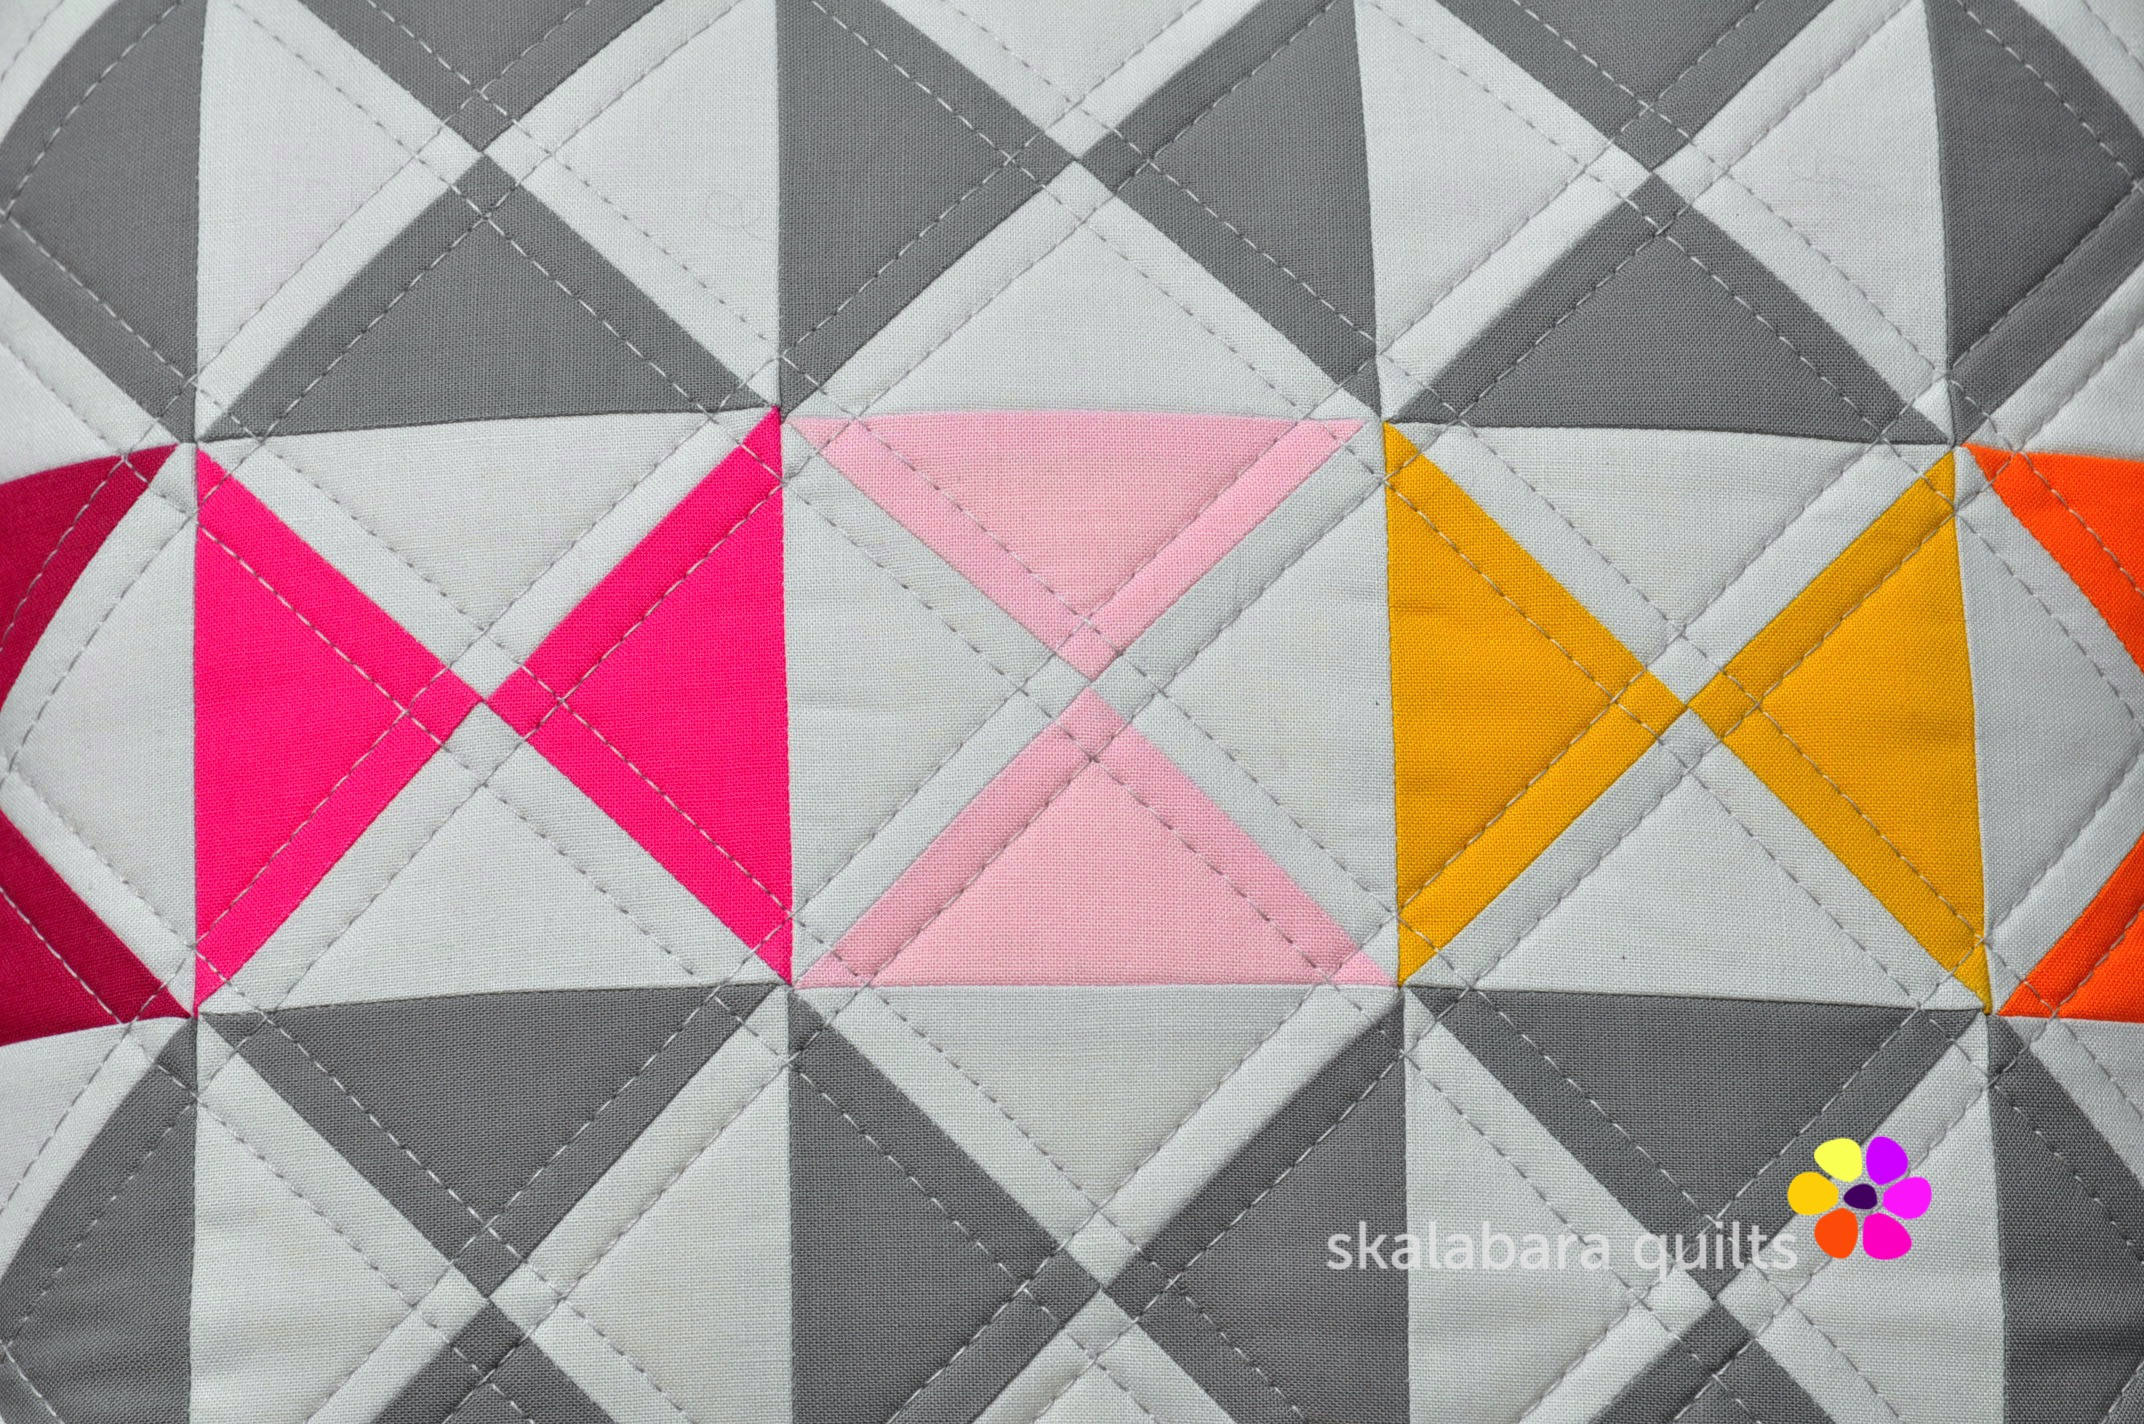 21 CU for alice side 1 detail - skalabara quilts